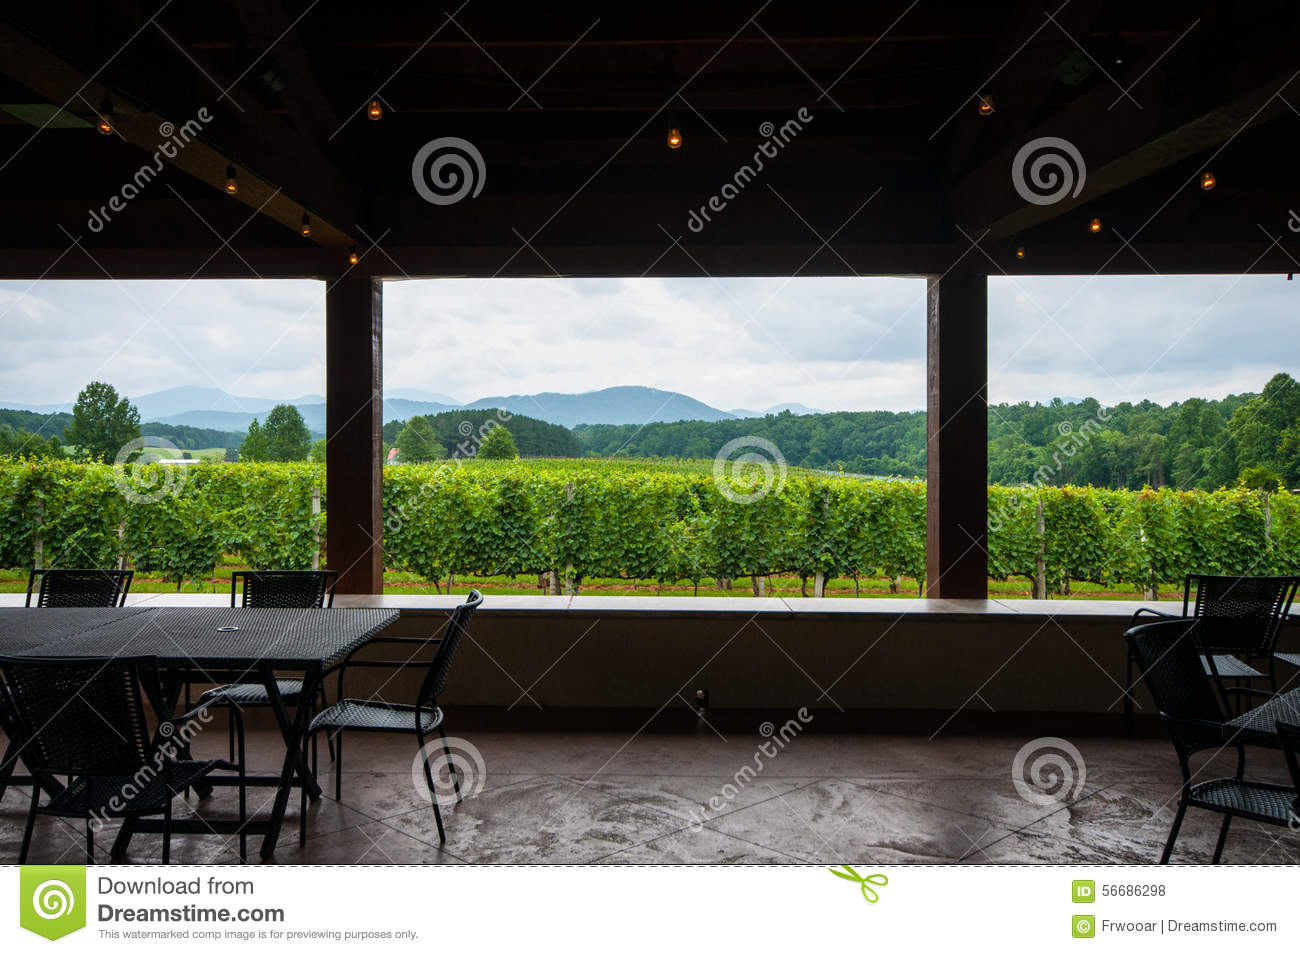 View from Inside Winery Pavillion in Blue Ridge Mountains